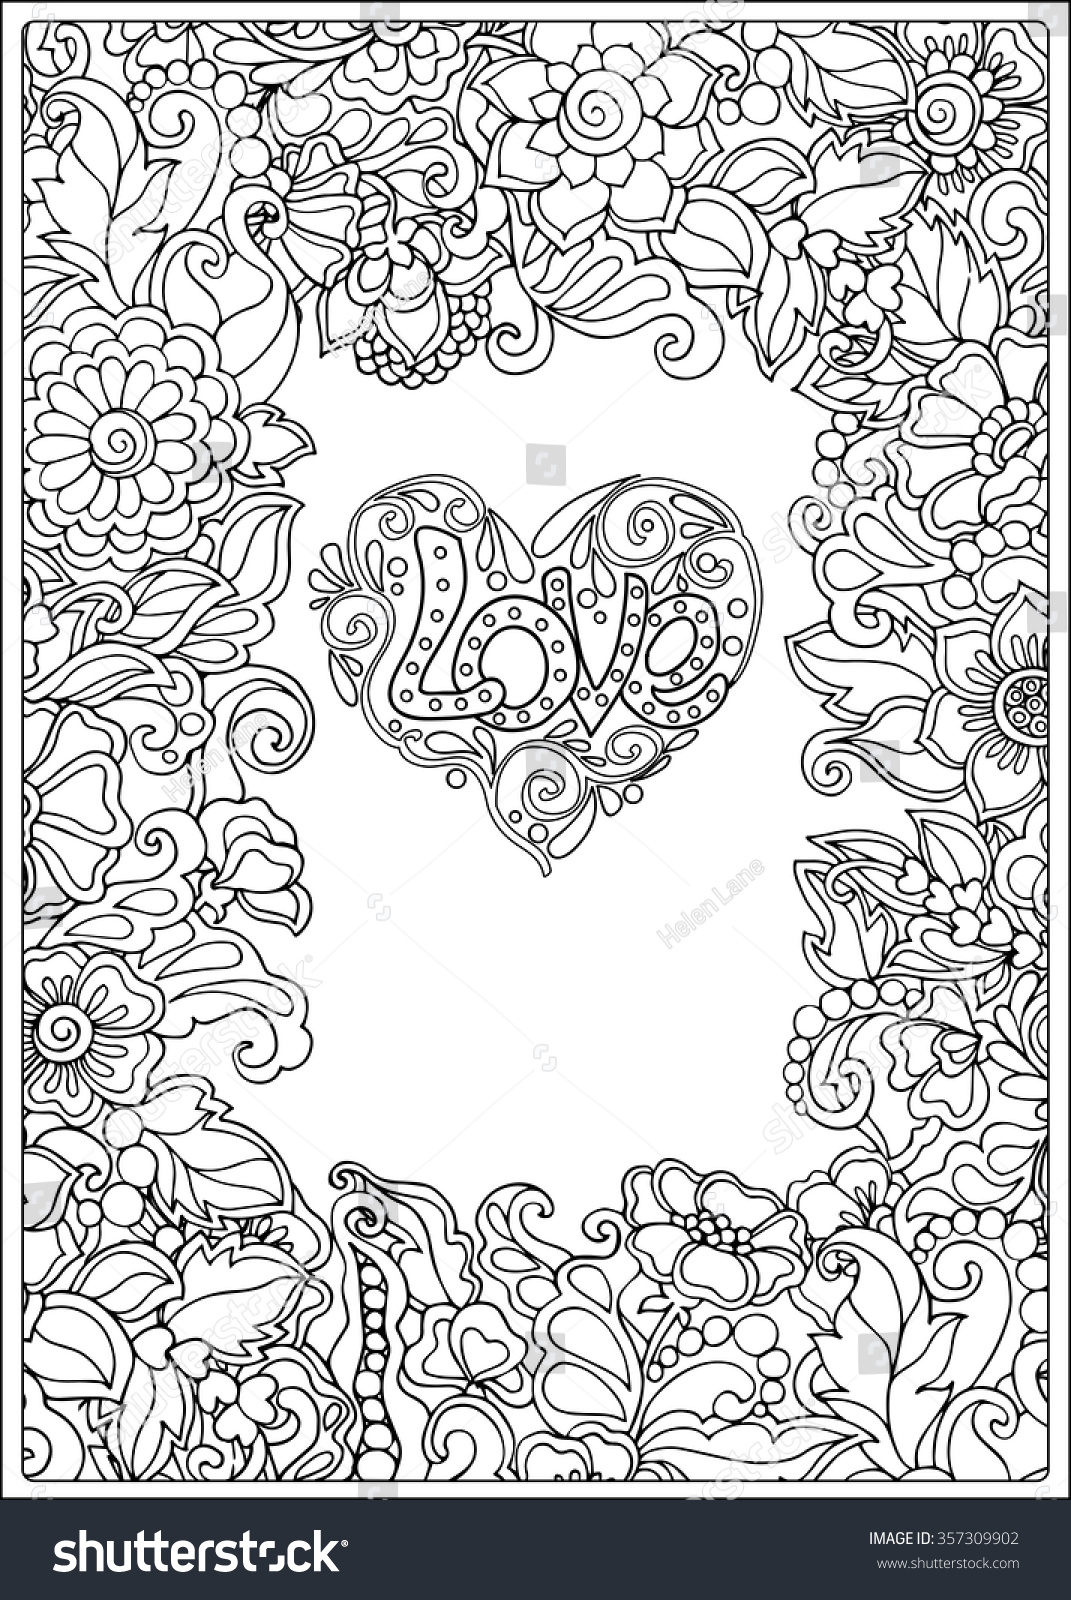 older valentines day coloring pages - photo#16